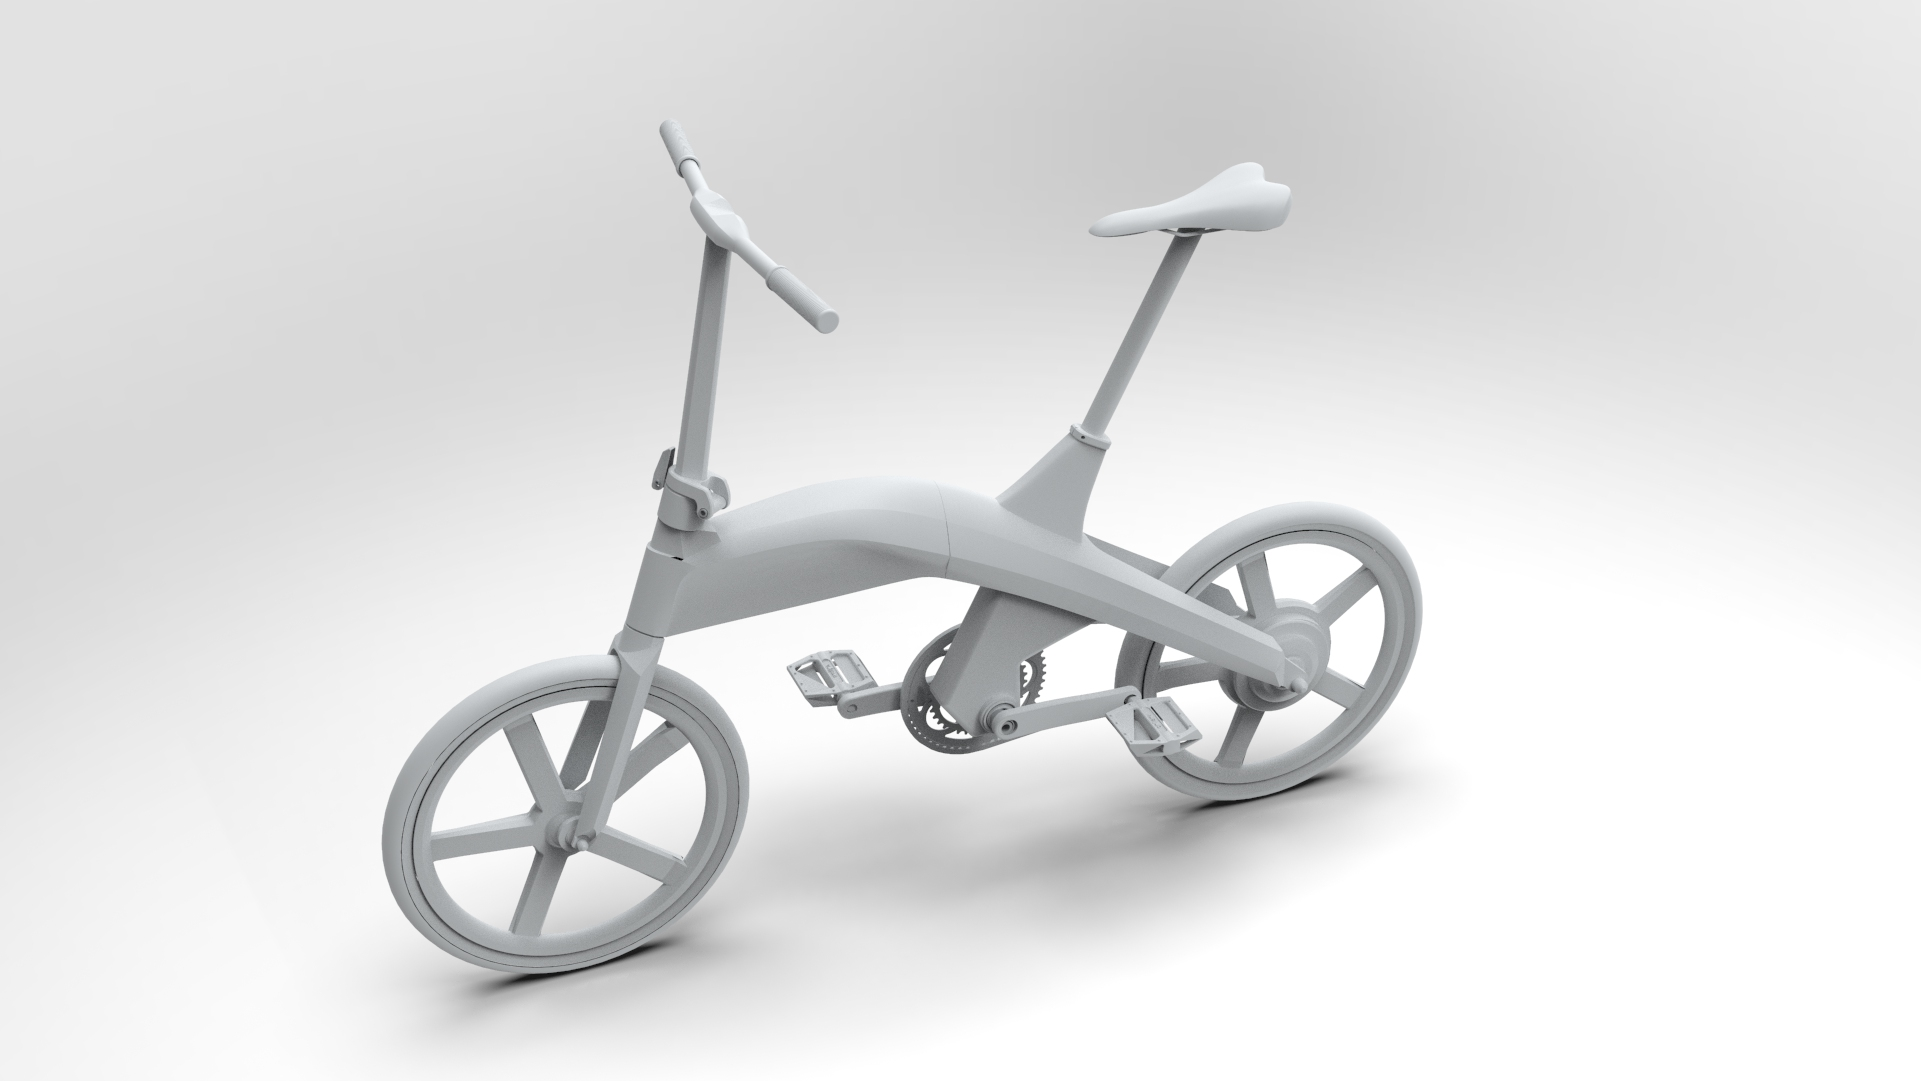 velo pliant electrique prototype design by fonction design